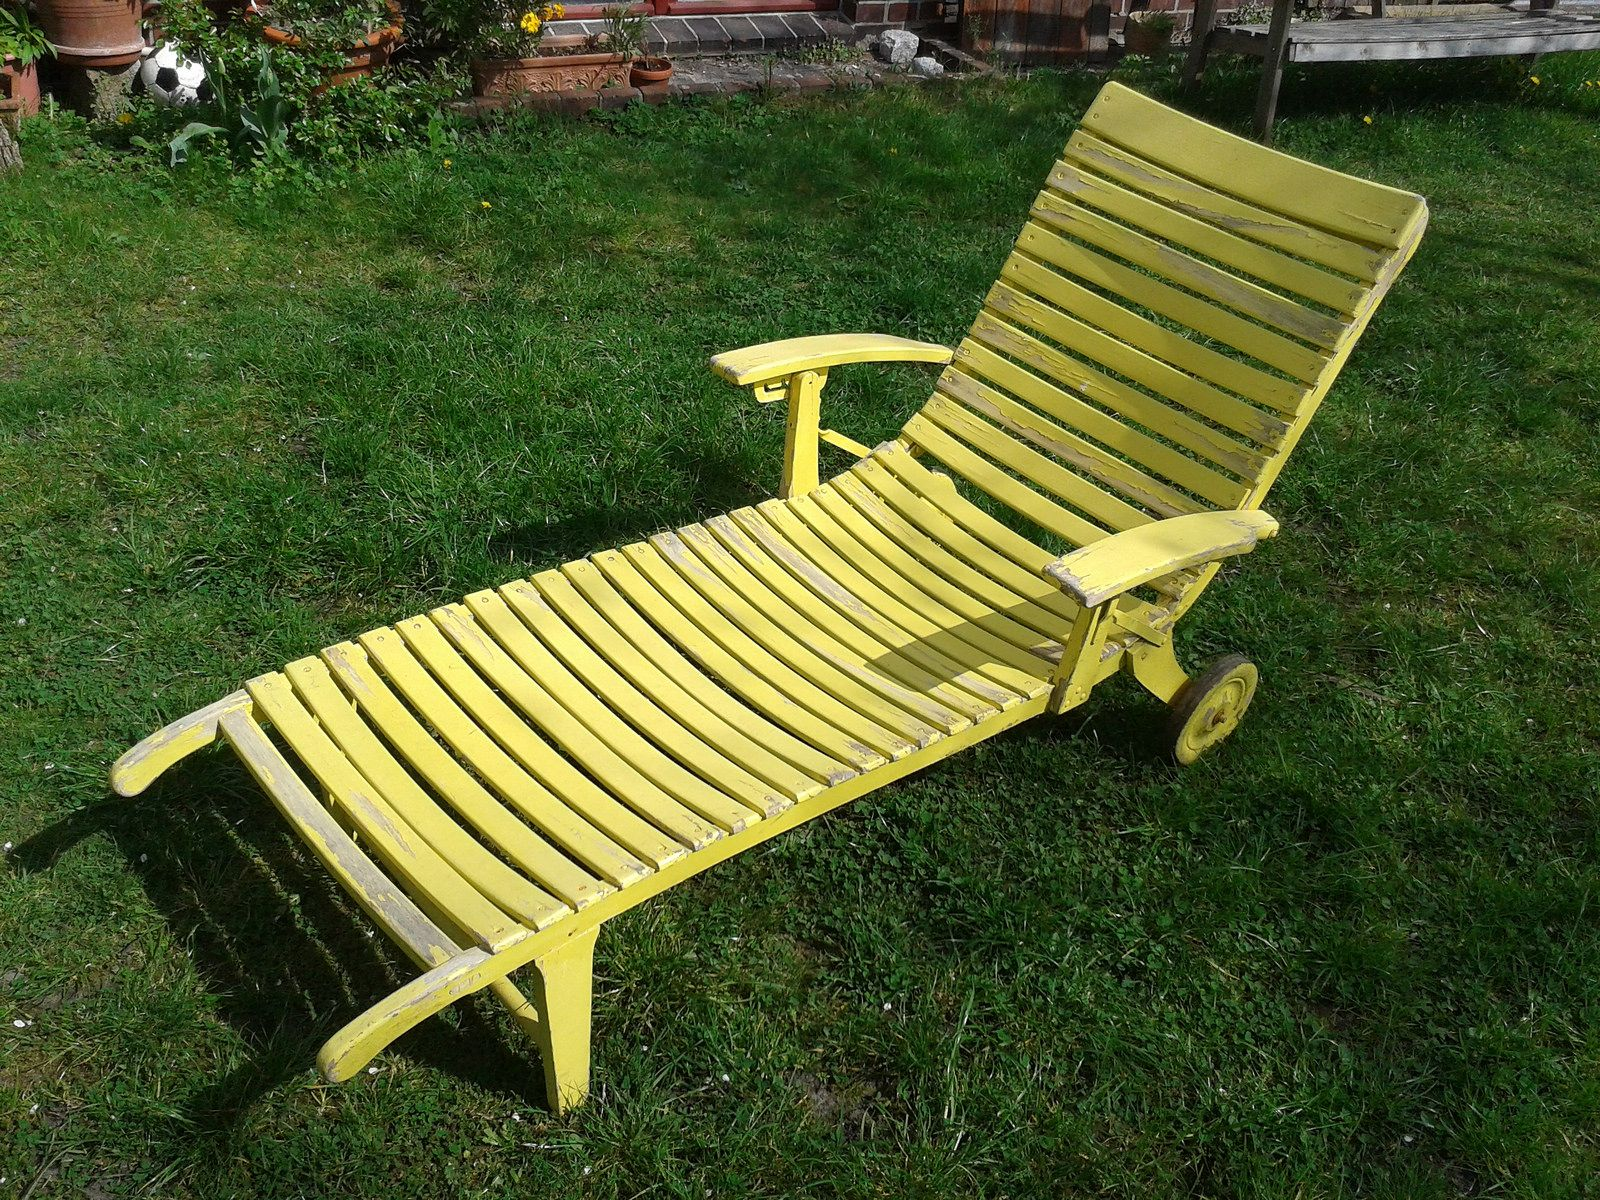 Relaxstuhl Holz Deckchair Holz Cool Deckchair Classico Without Armrest